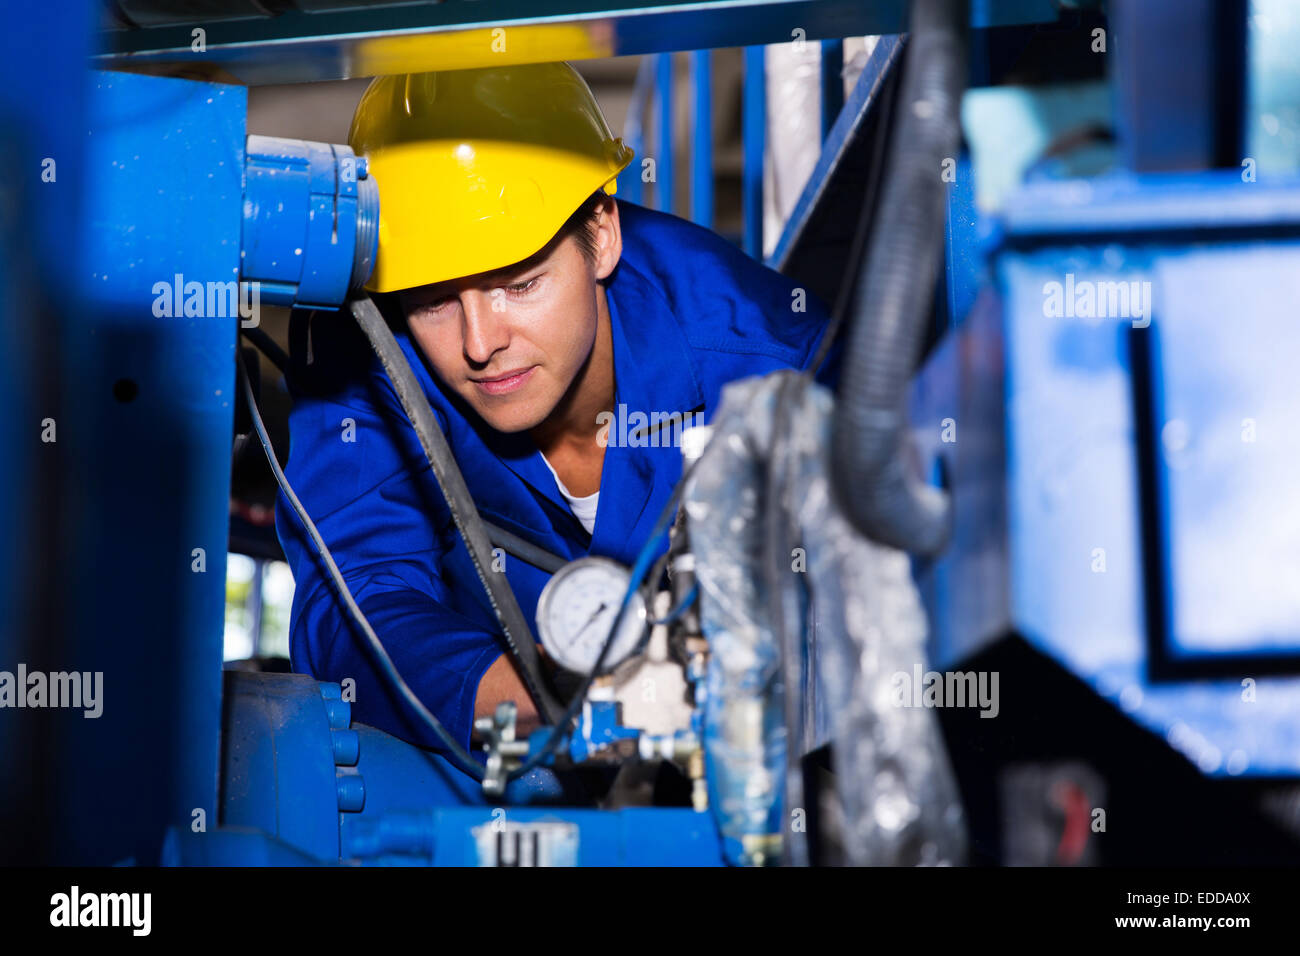 young industrial machine operator at work - Stock Image